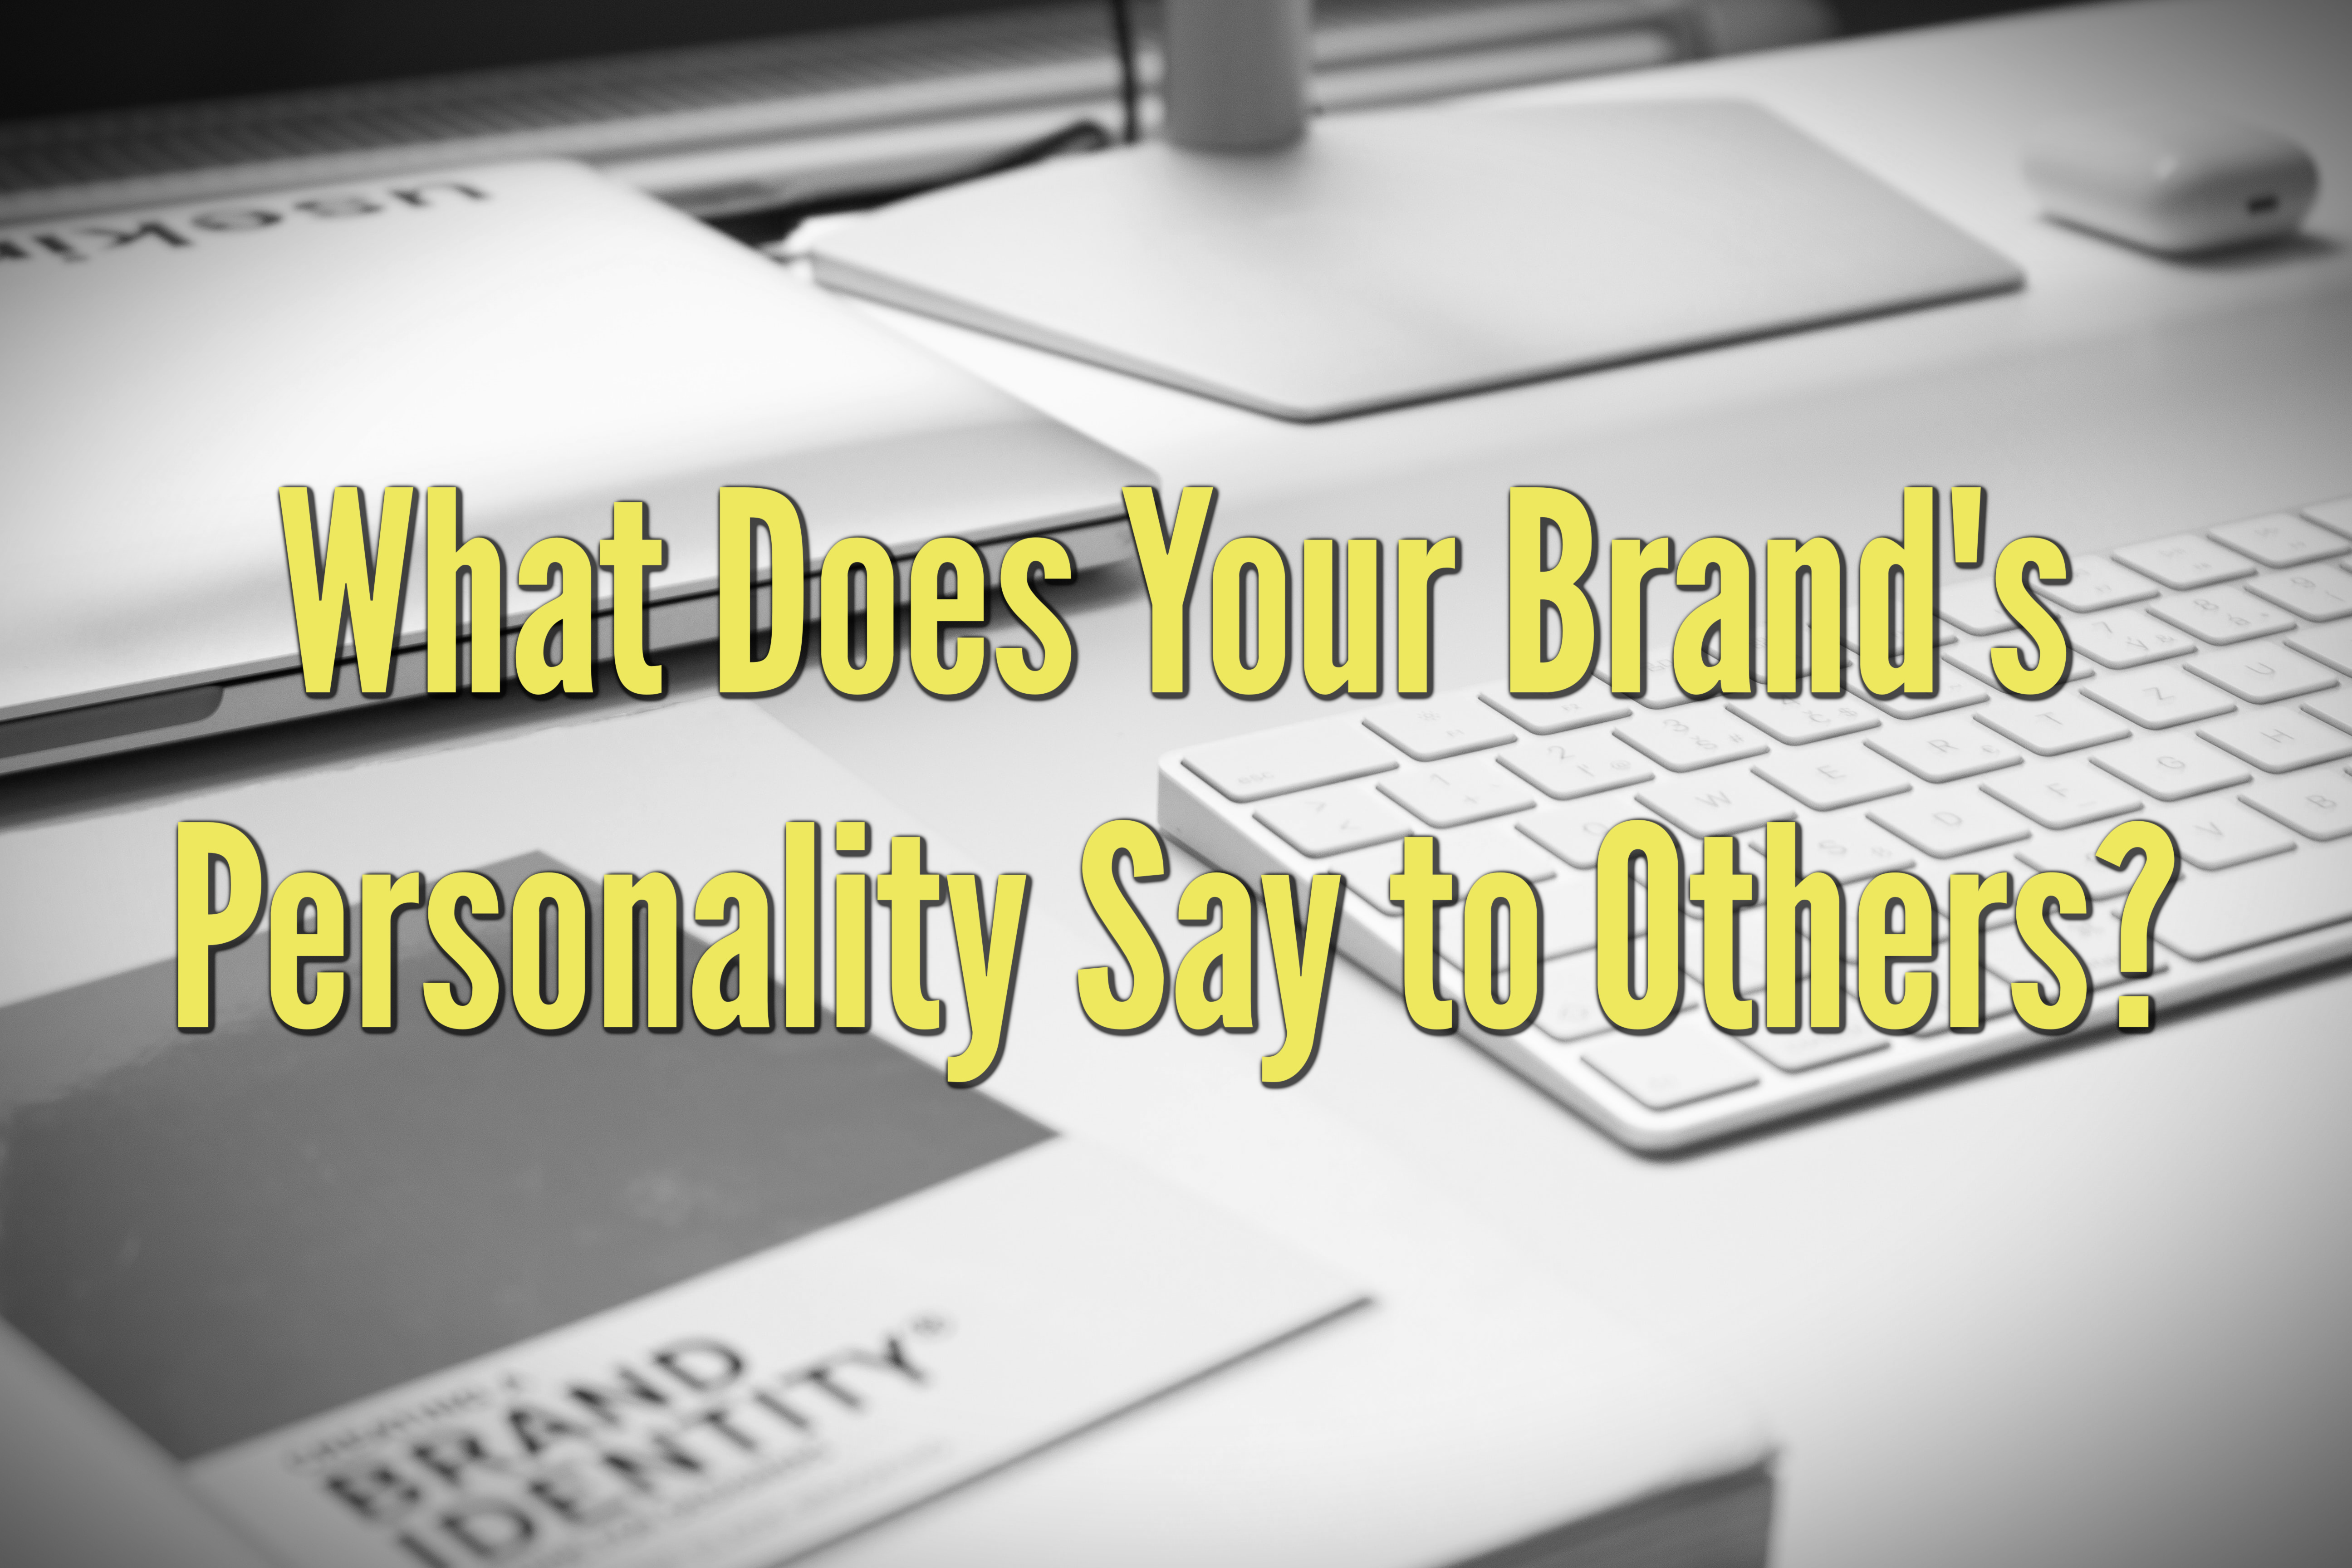 What Does Your Brand's Personality Say to Others?